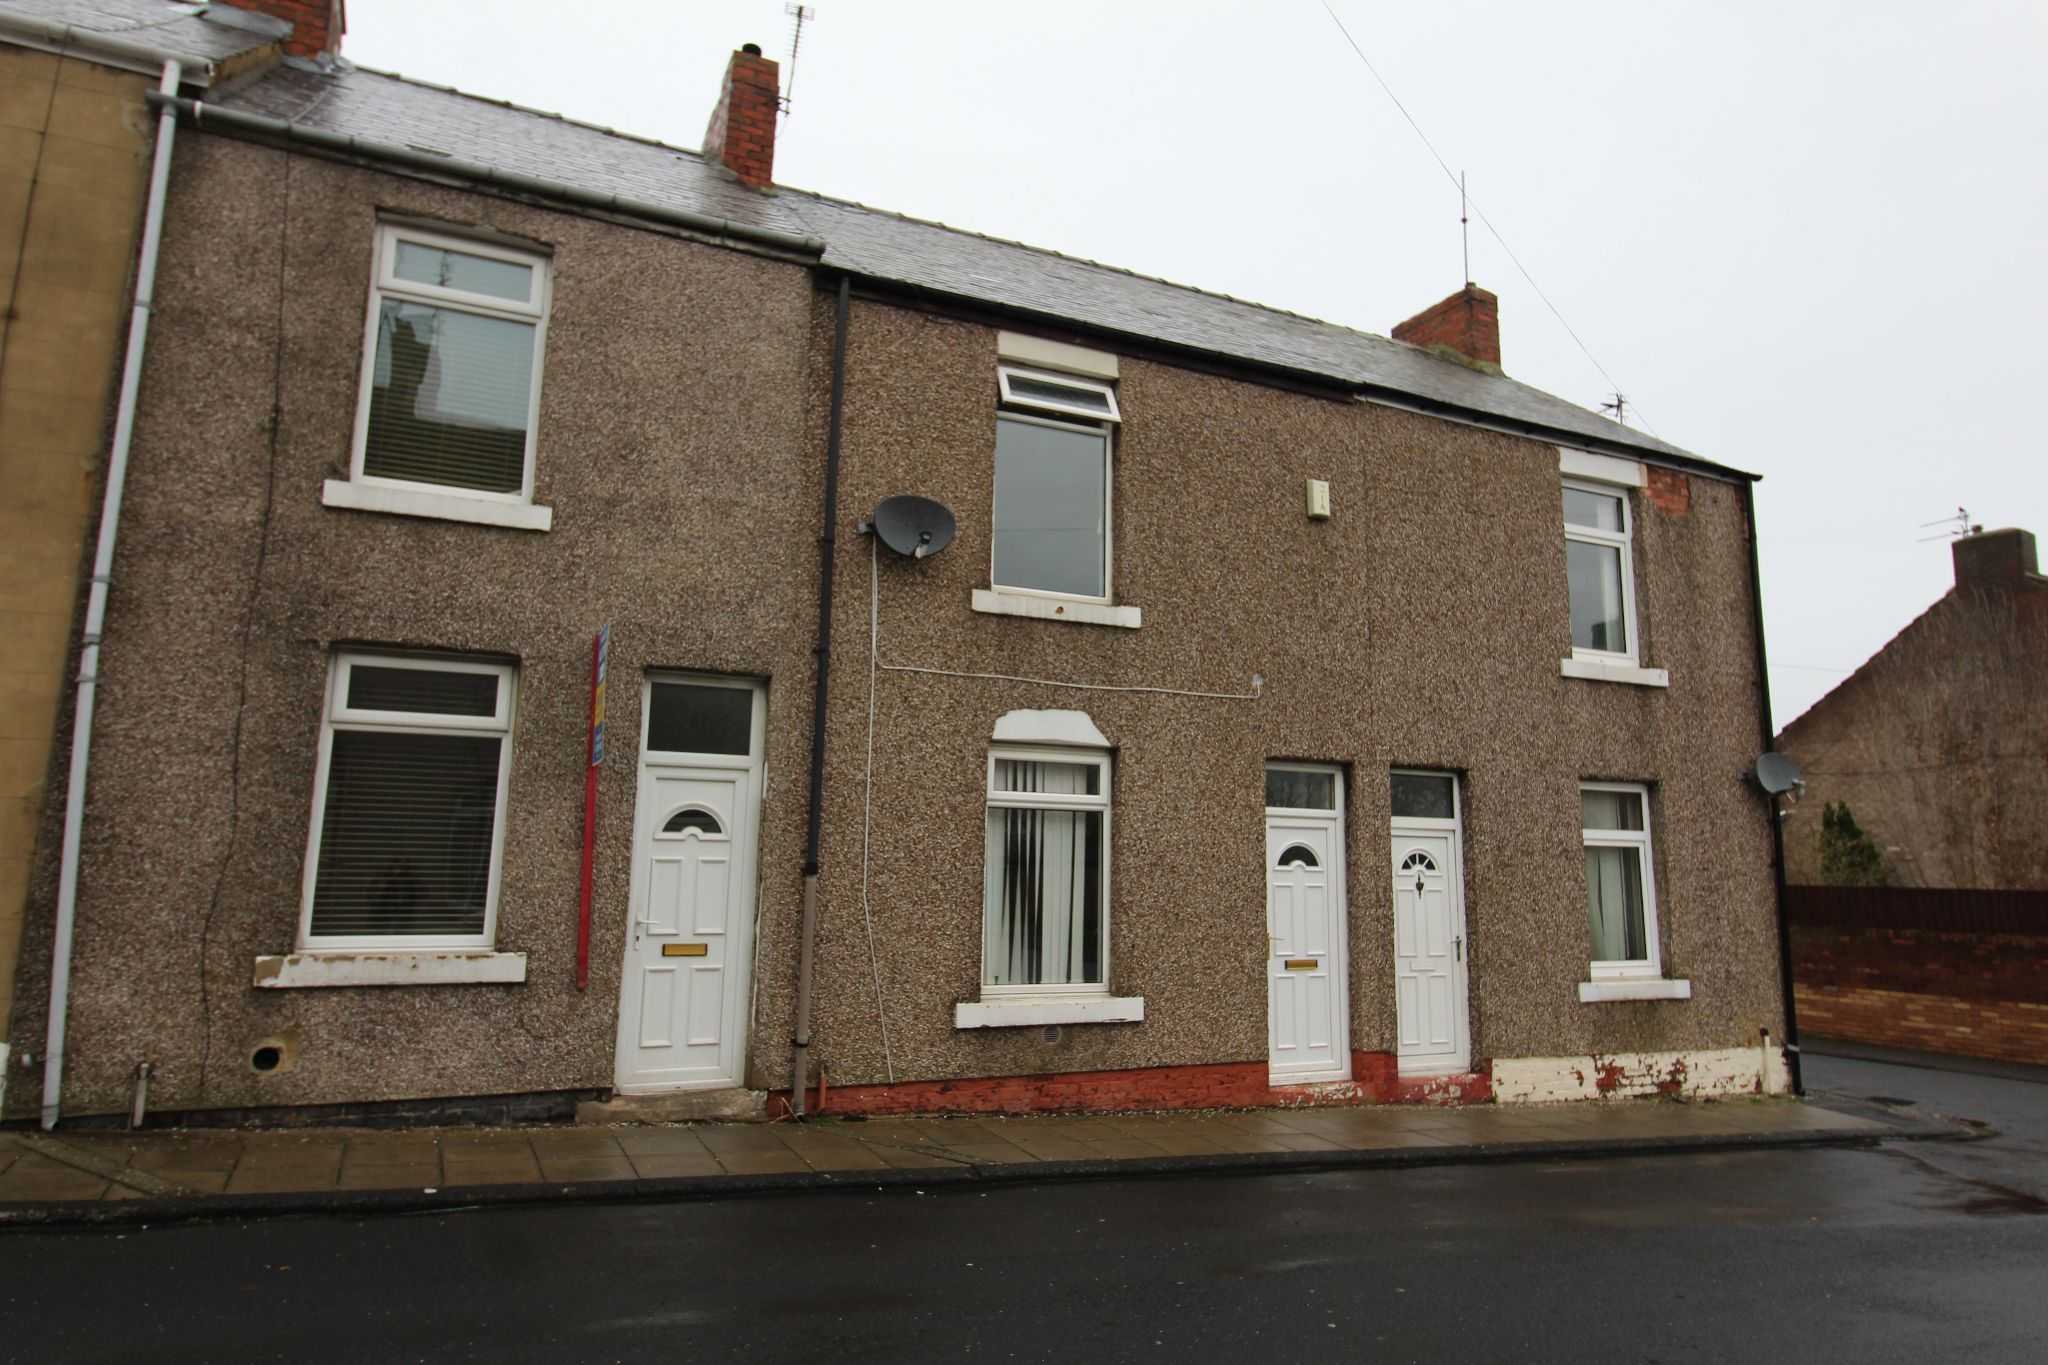 2 bedroom mid terraced house Let in Spennymoor - Photograph 1.